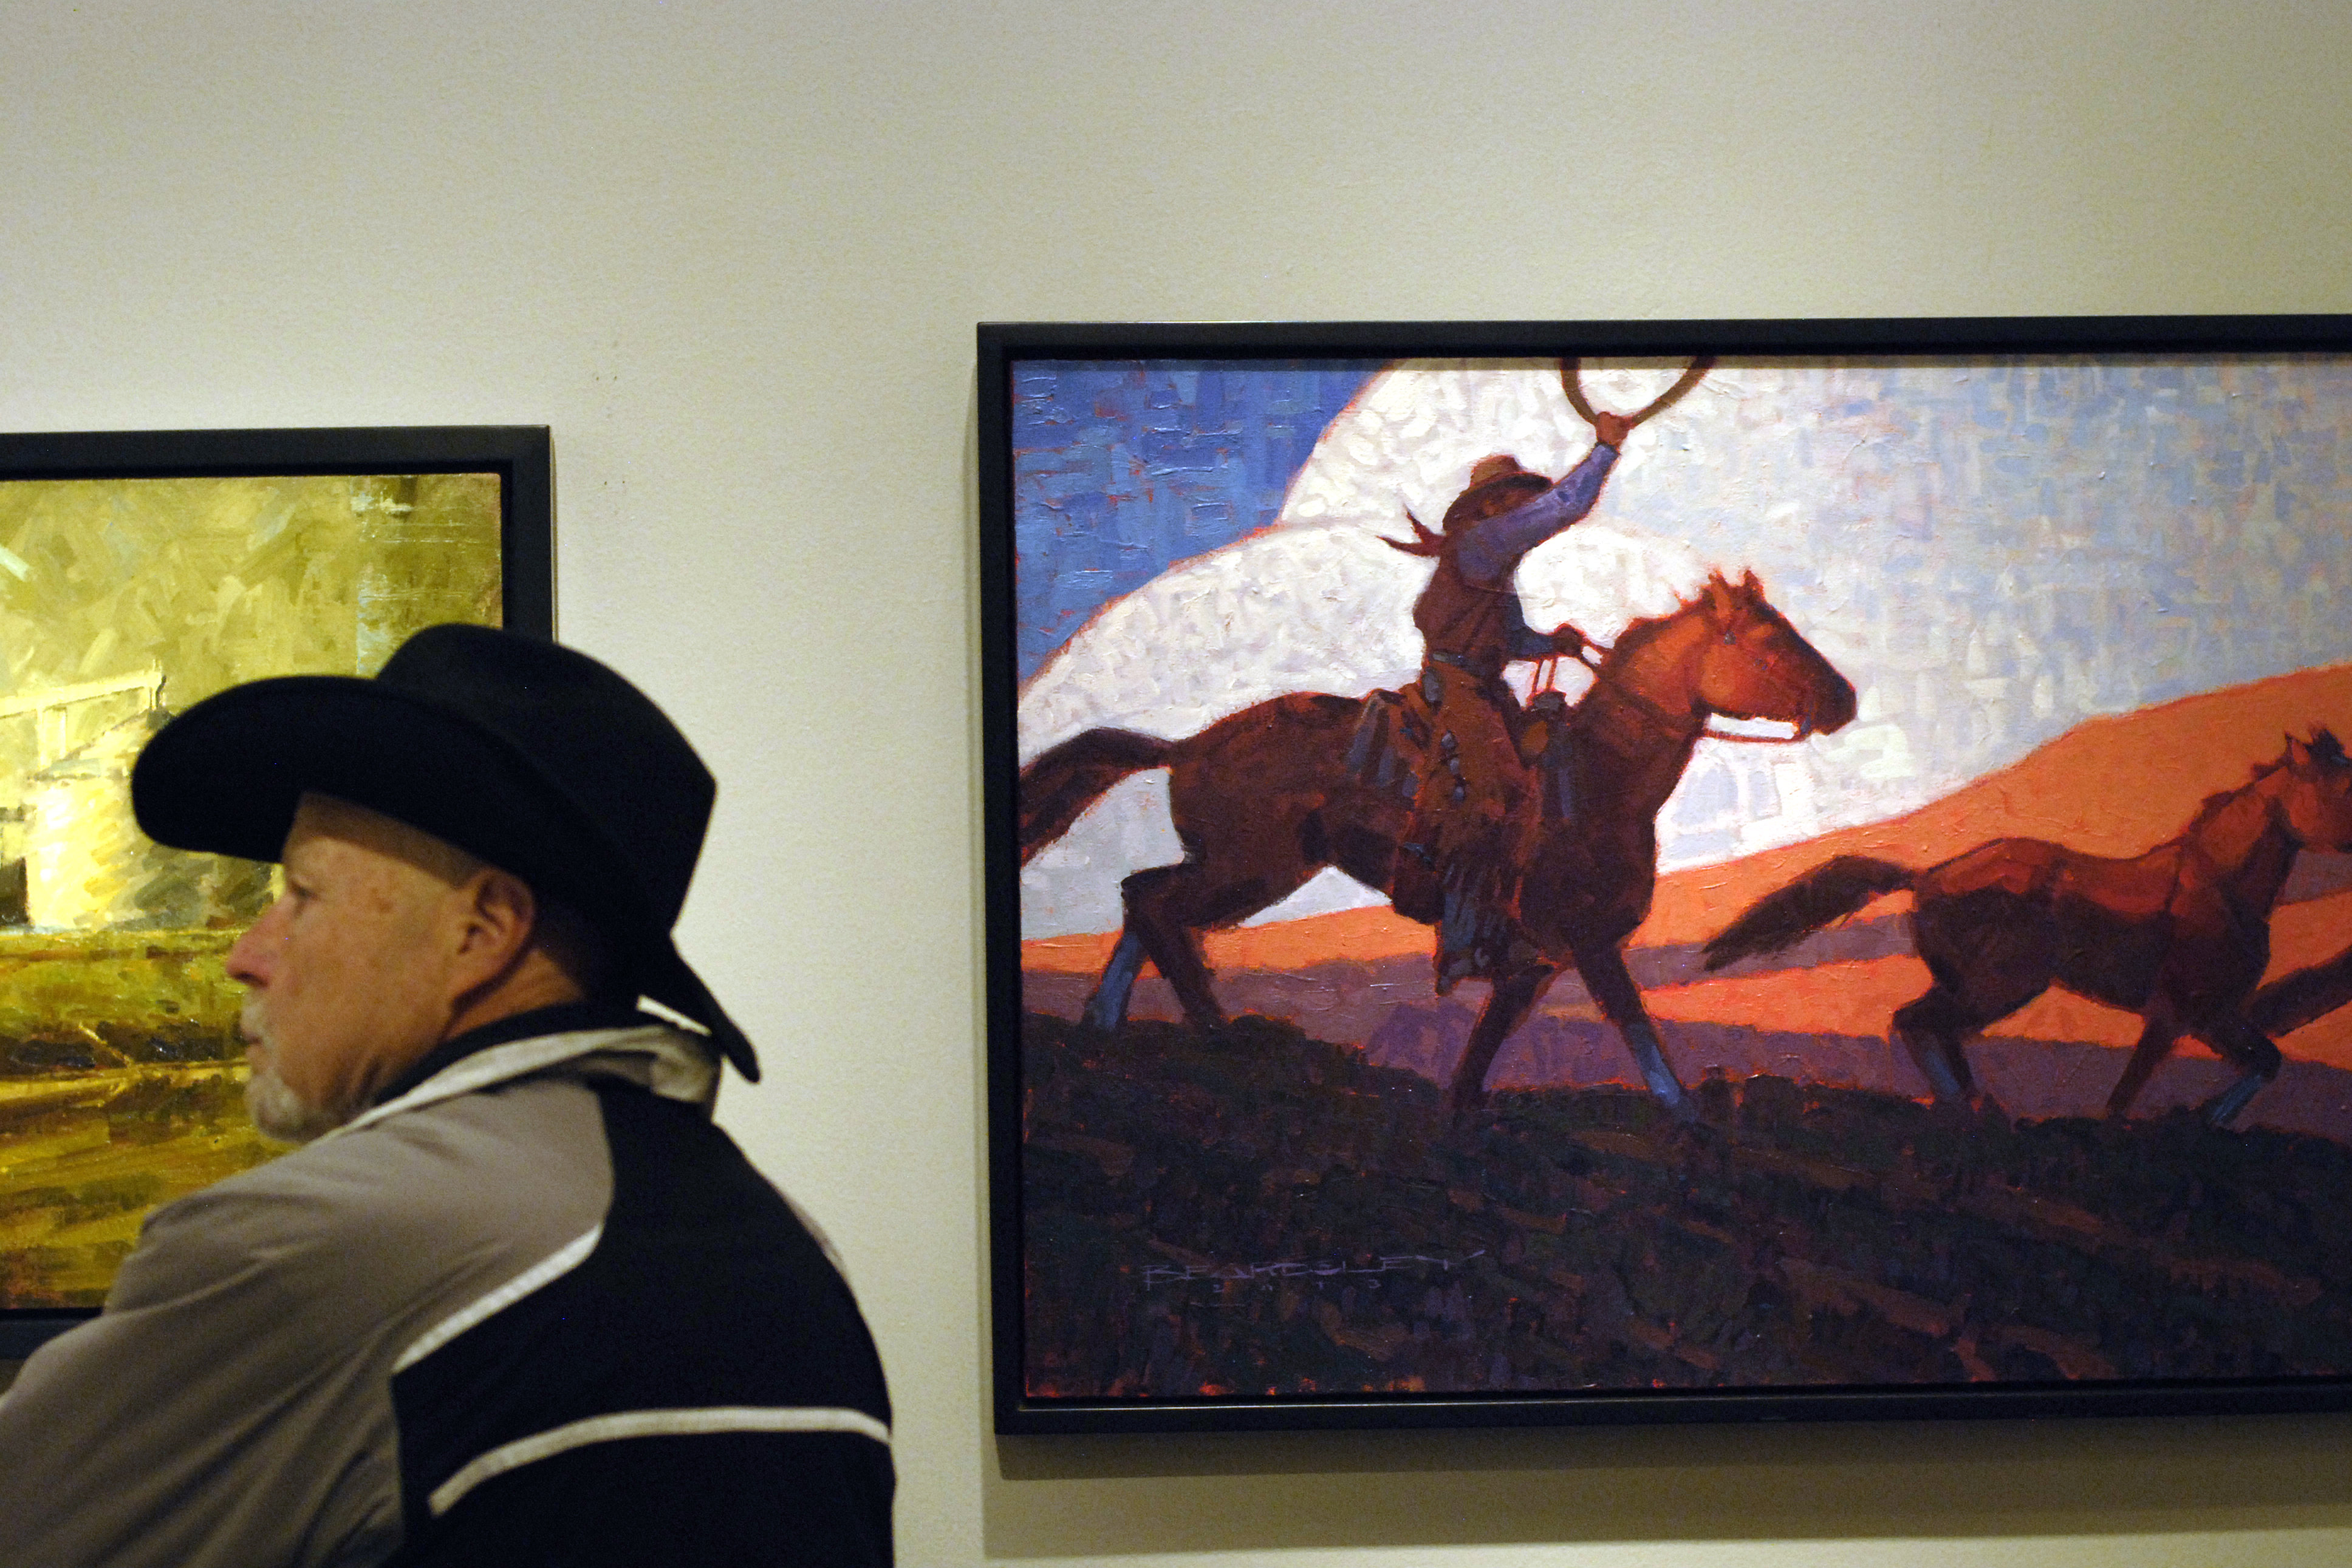 PHOTO: Cowboy art at the National Western Stock Show 2014